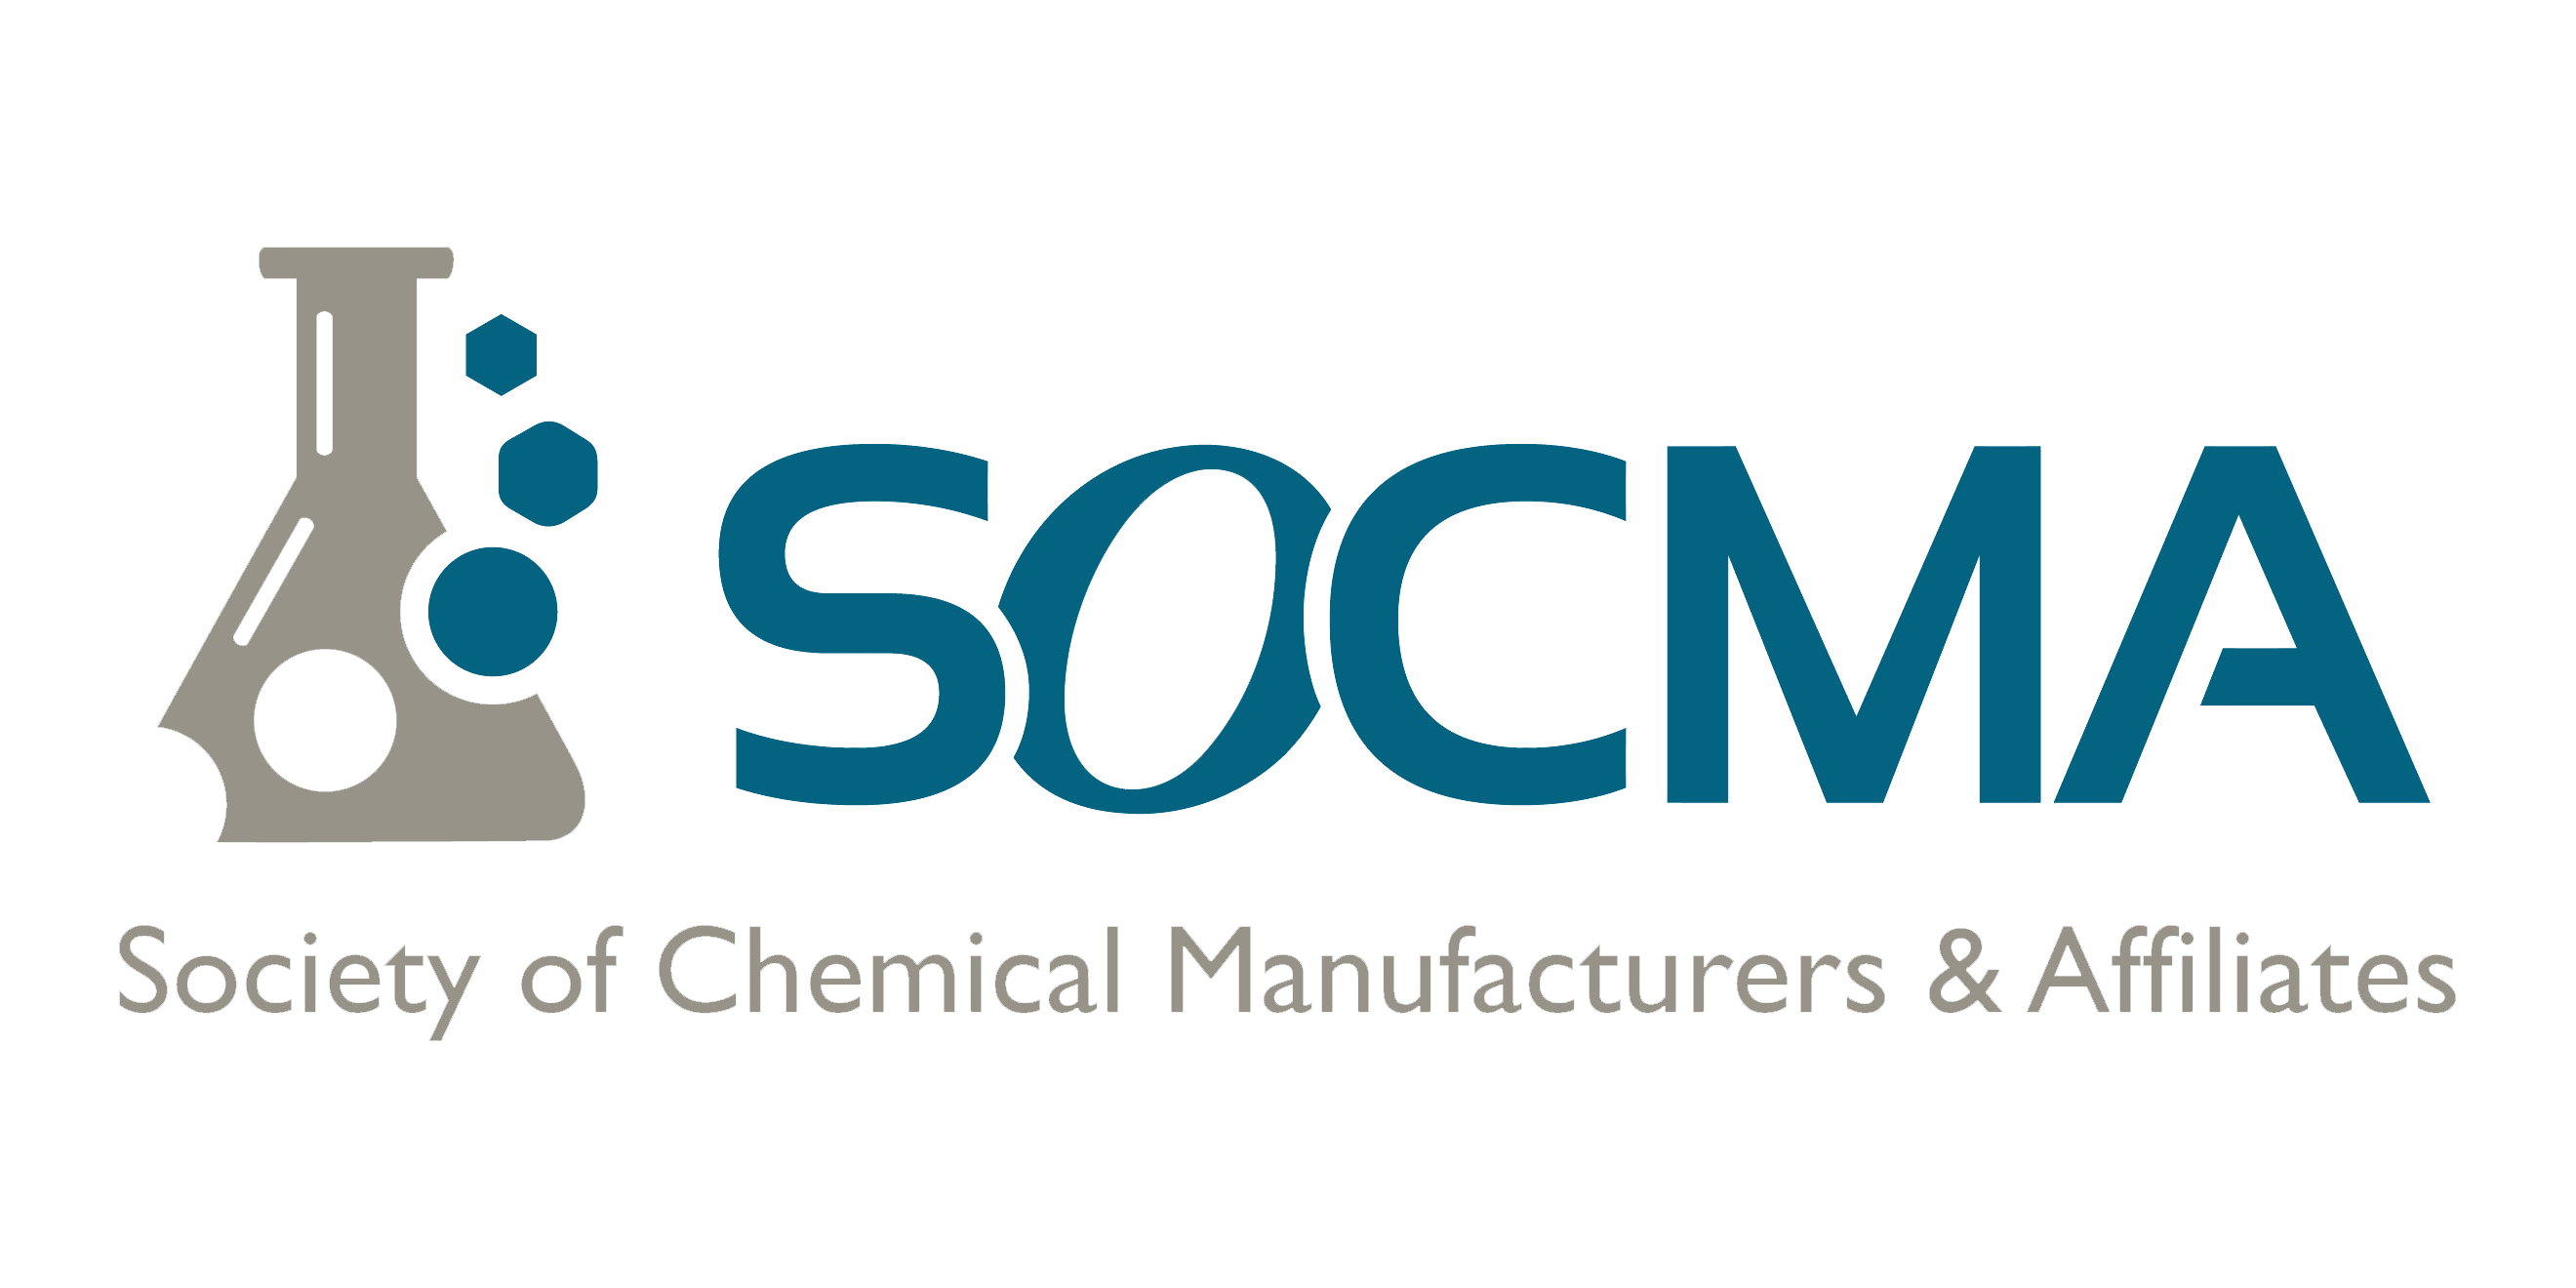 Society of Chemical Manufacturers and Affiliates Logo